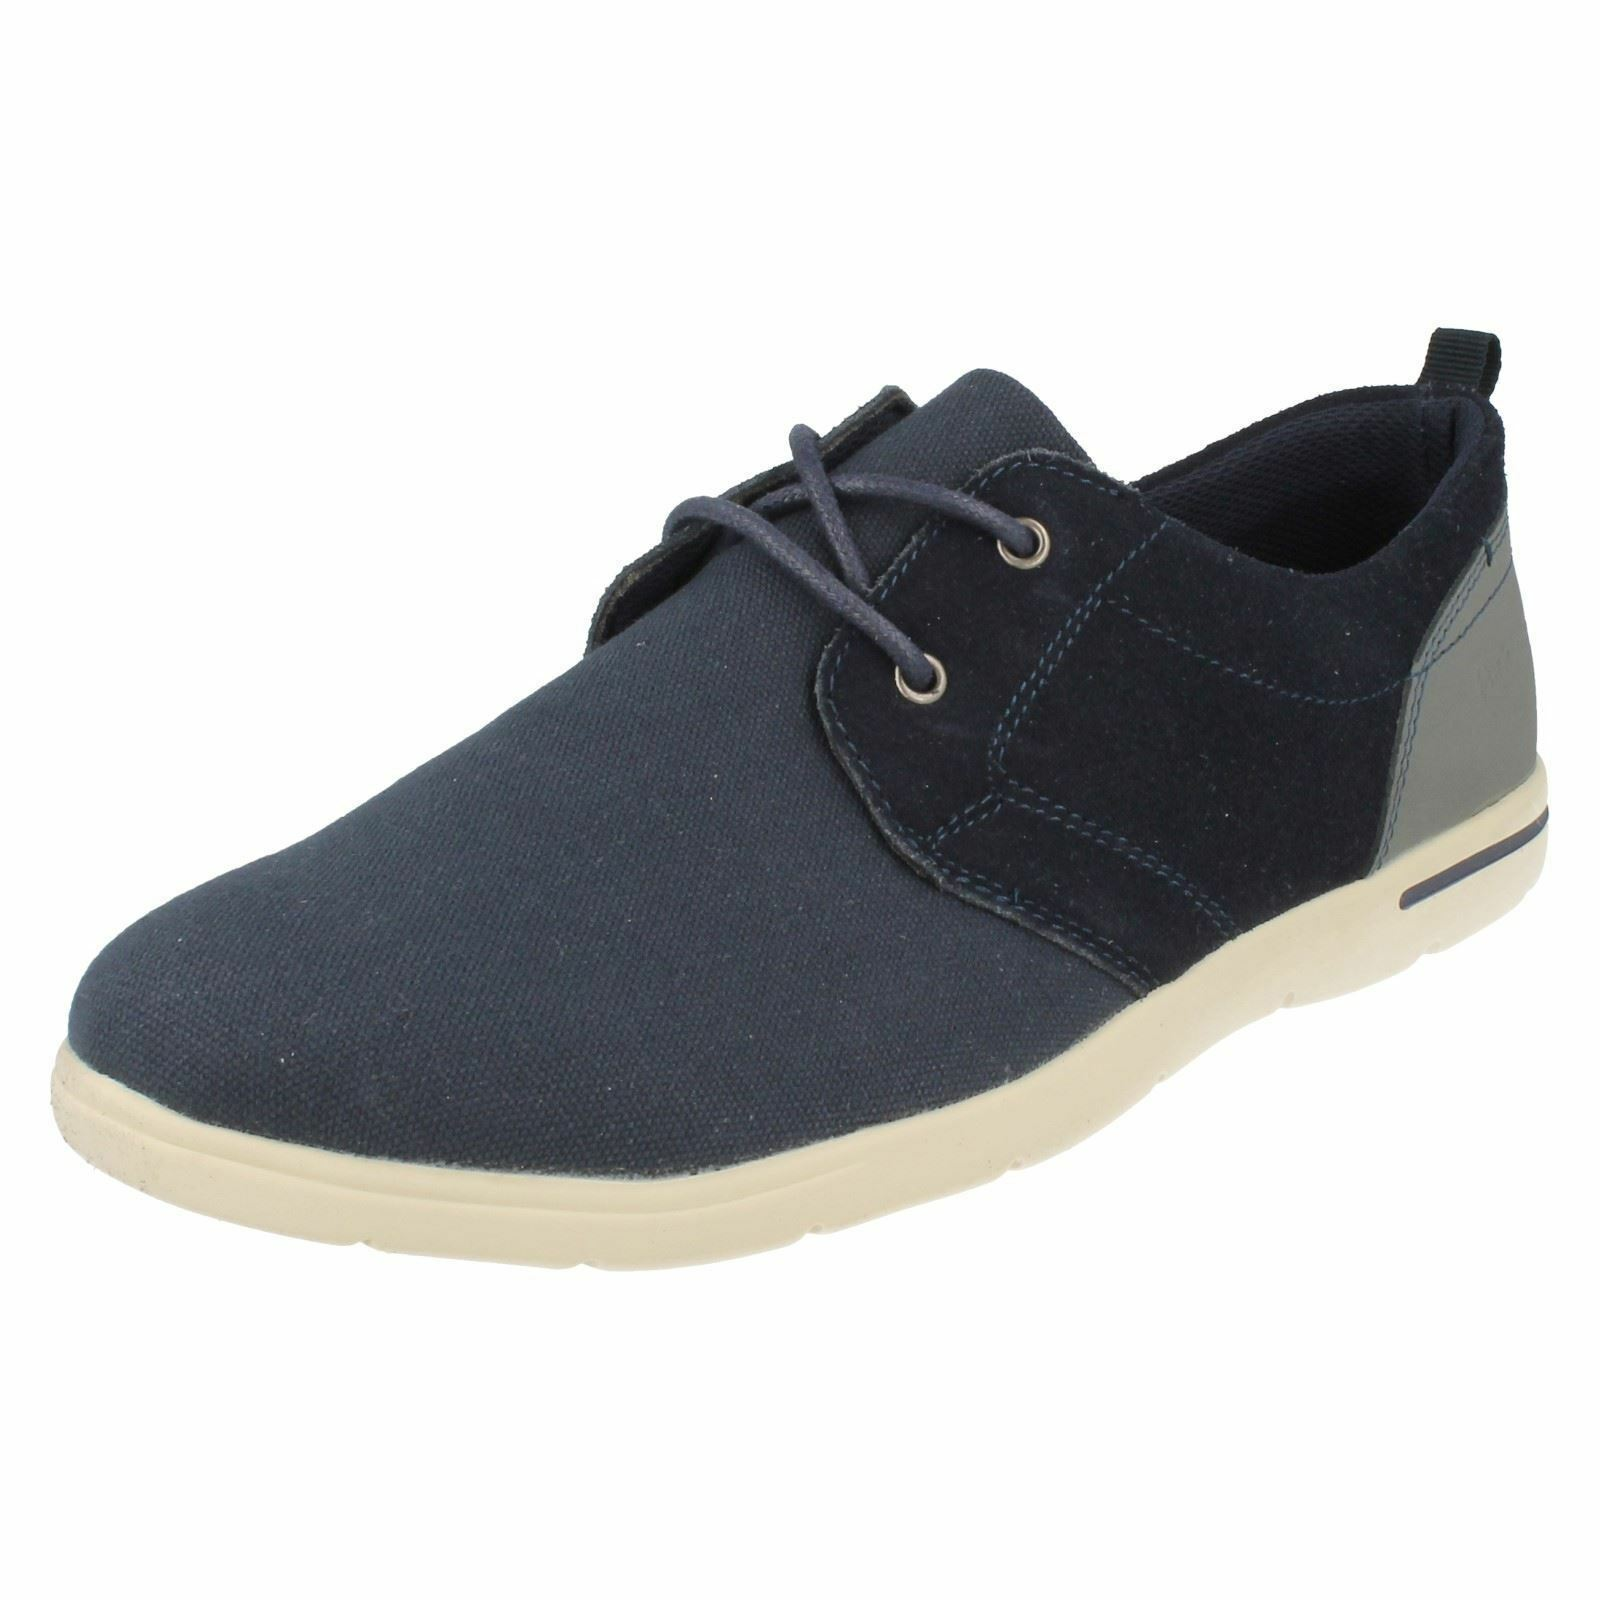 PADDERS LIAM MENS LACE UP ROUND TOE FLAT F FITTING SMART NAVY CASUAL PUMPS SHOES